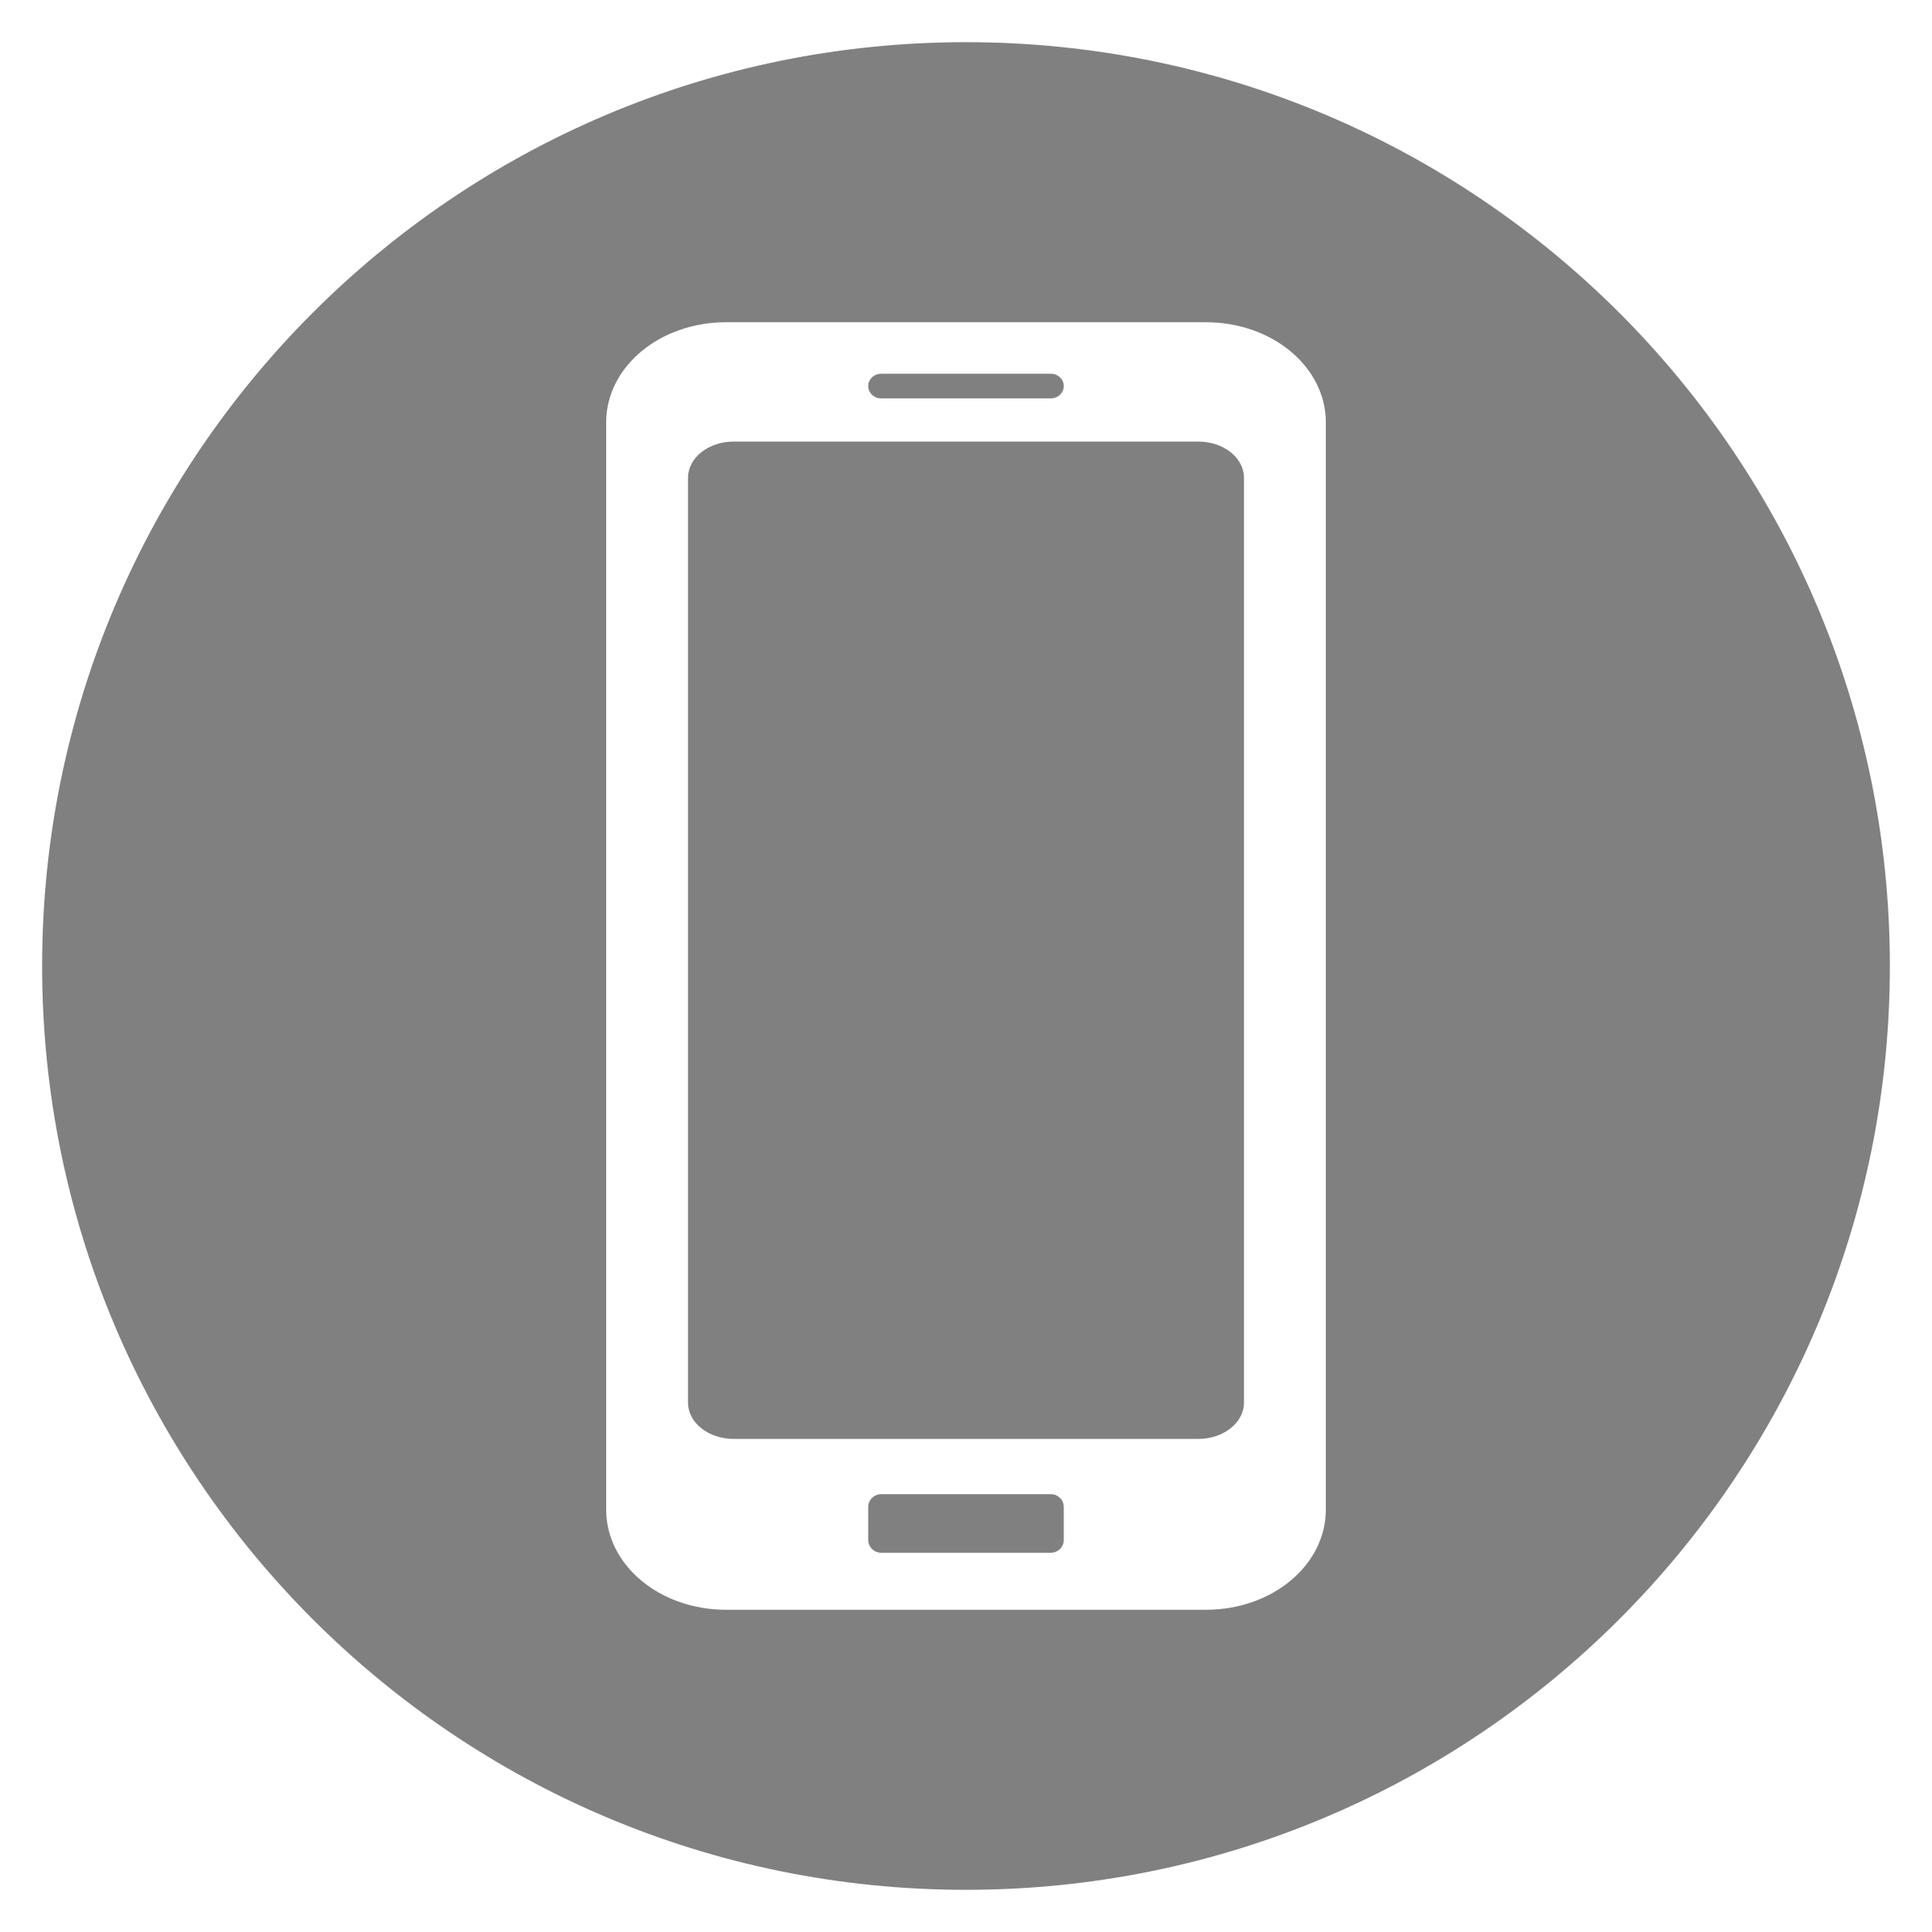 Cellphone icon png white. Mobile on grey icons